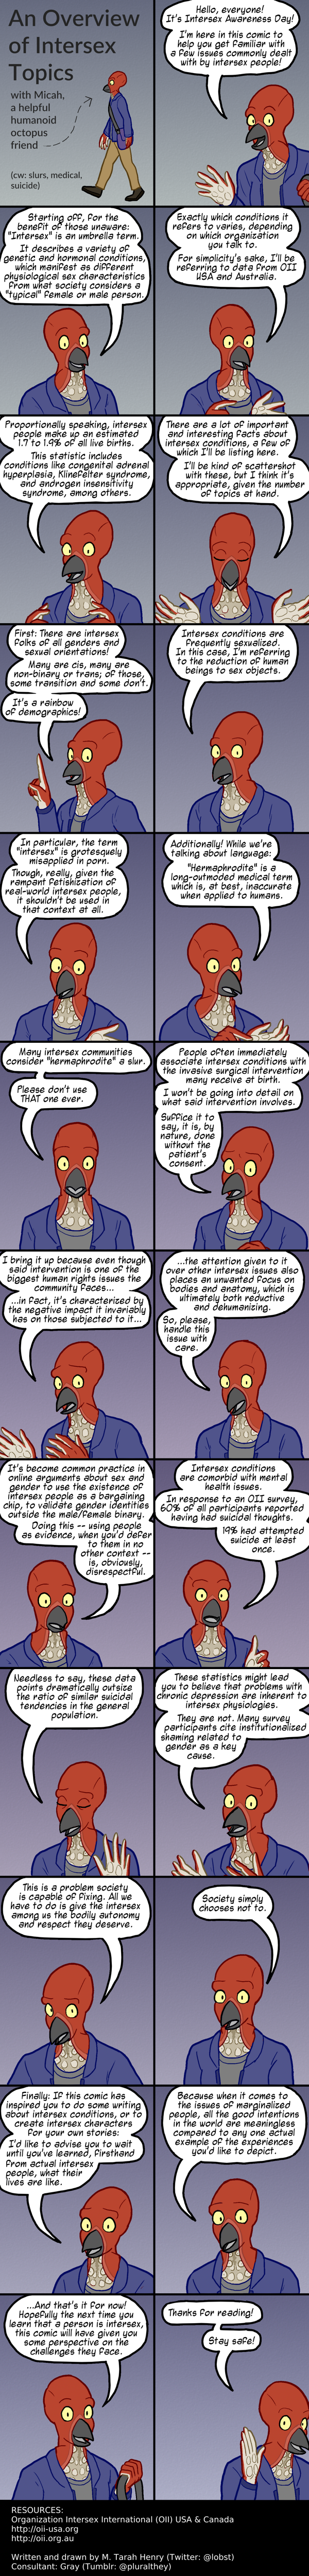 Comic: An Overview of Intersex Topics